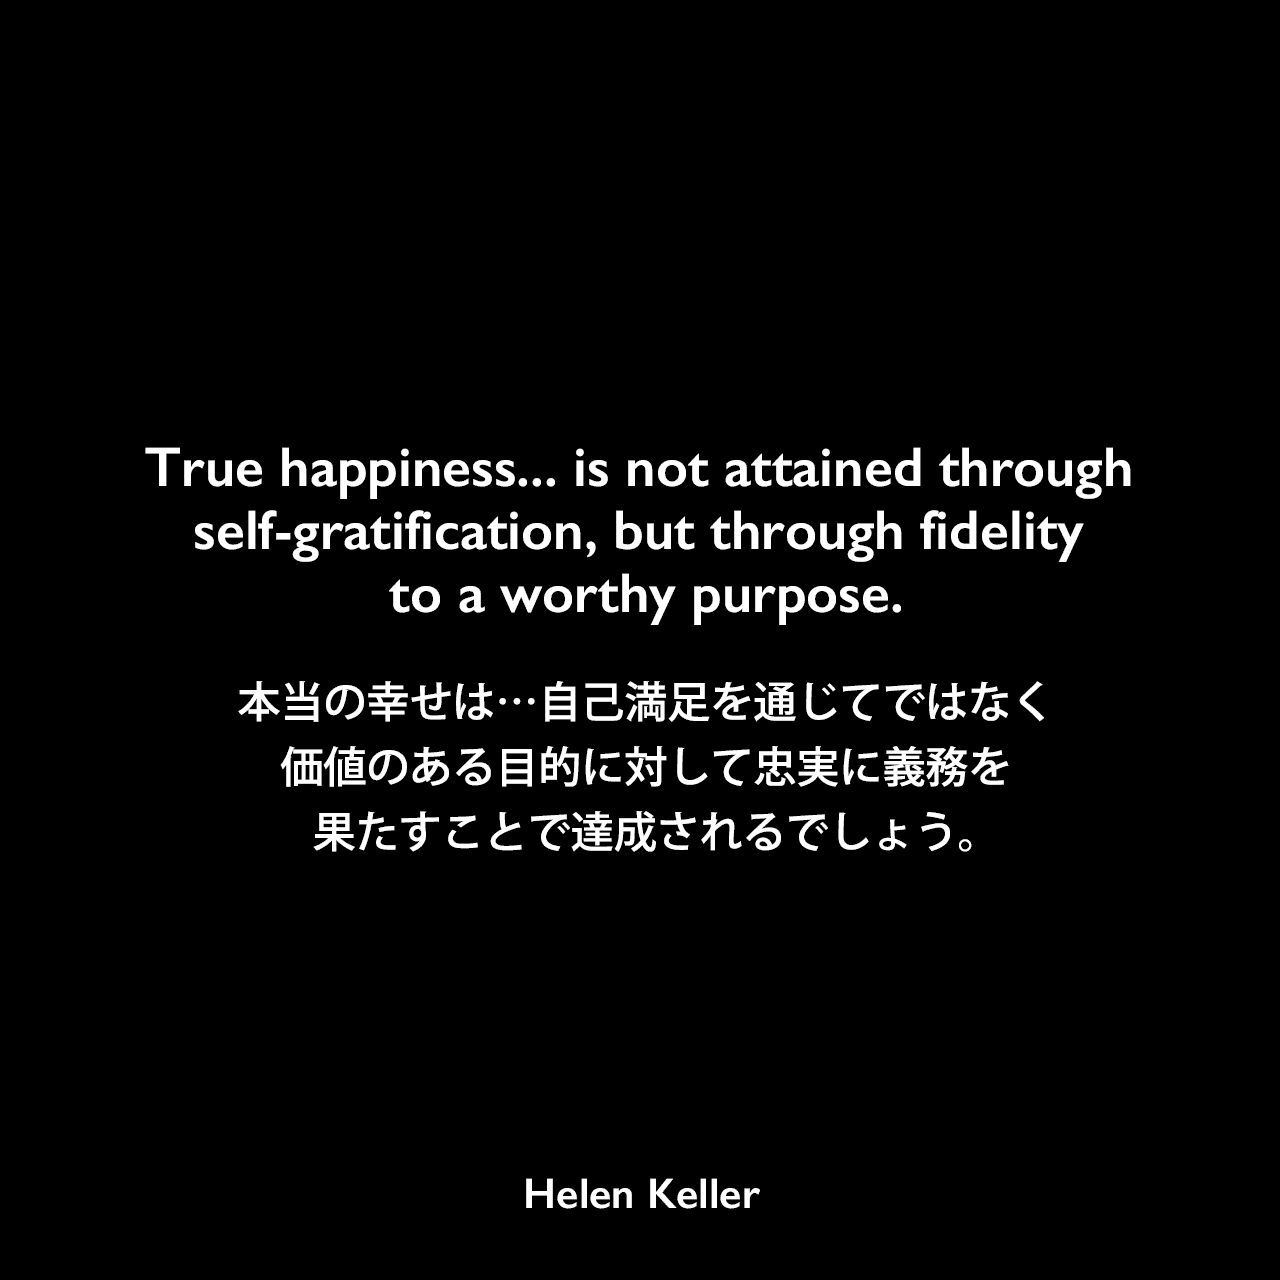 True happiness... is not attained through self-gratification, but through fidelity to a worthy purpose.本当の幸せは…自己満足を通じてではなく、価値のある目的に対して忠実に義務を果たすことで達成されるでしょう。Helen Keller